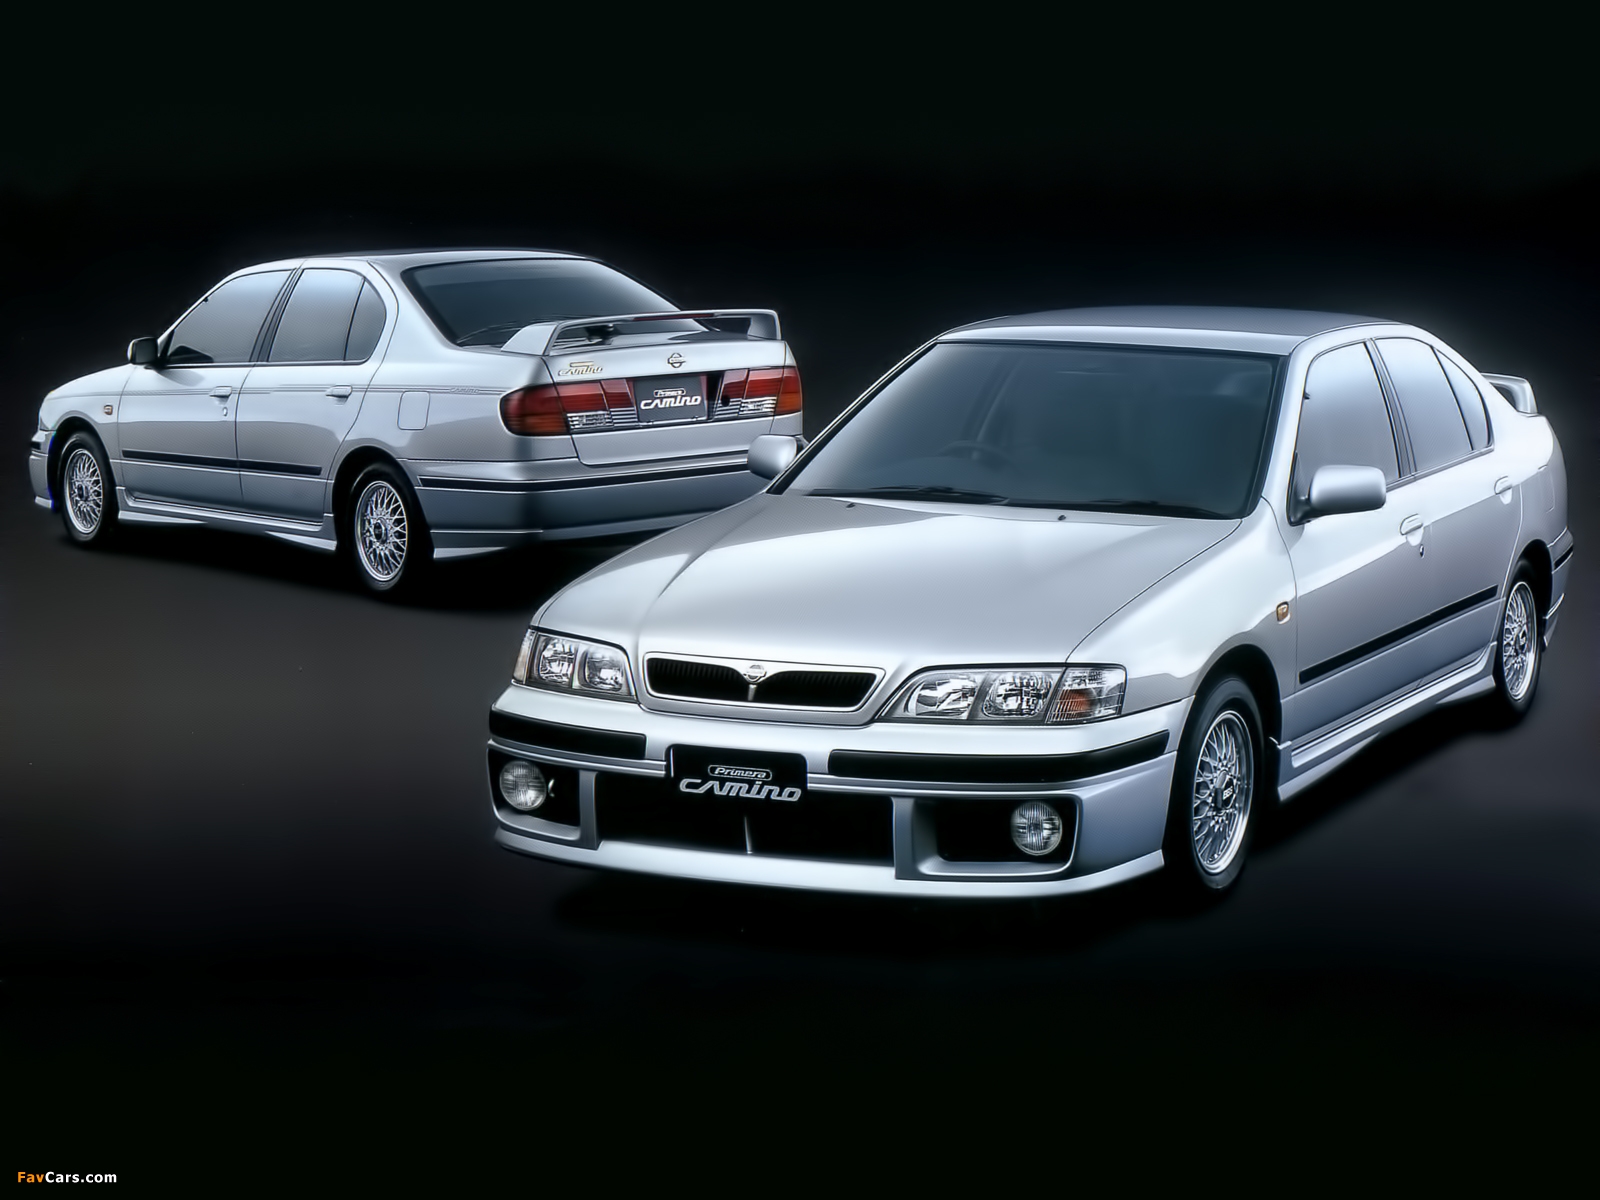 2003 wald nissan march images hd cars wallpaper 1994 wald nissan primera images hd cars wallpaper of nissan primera camino p11 199599 images of vanachro Gallery